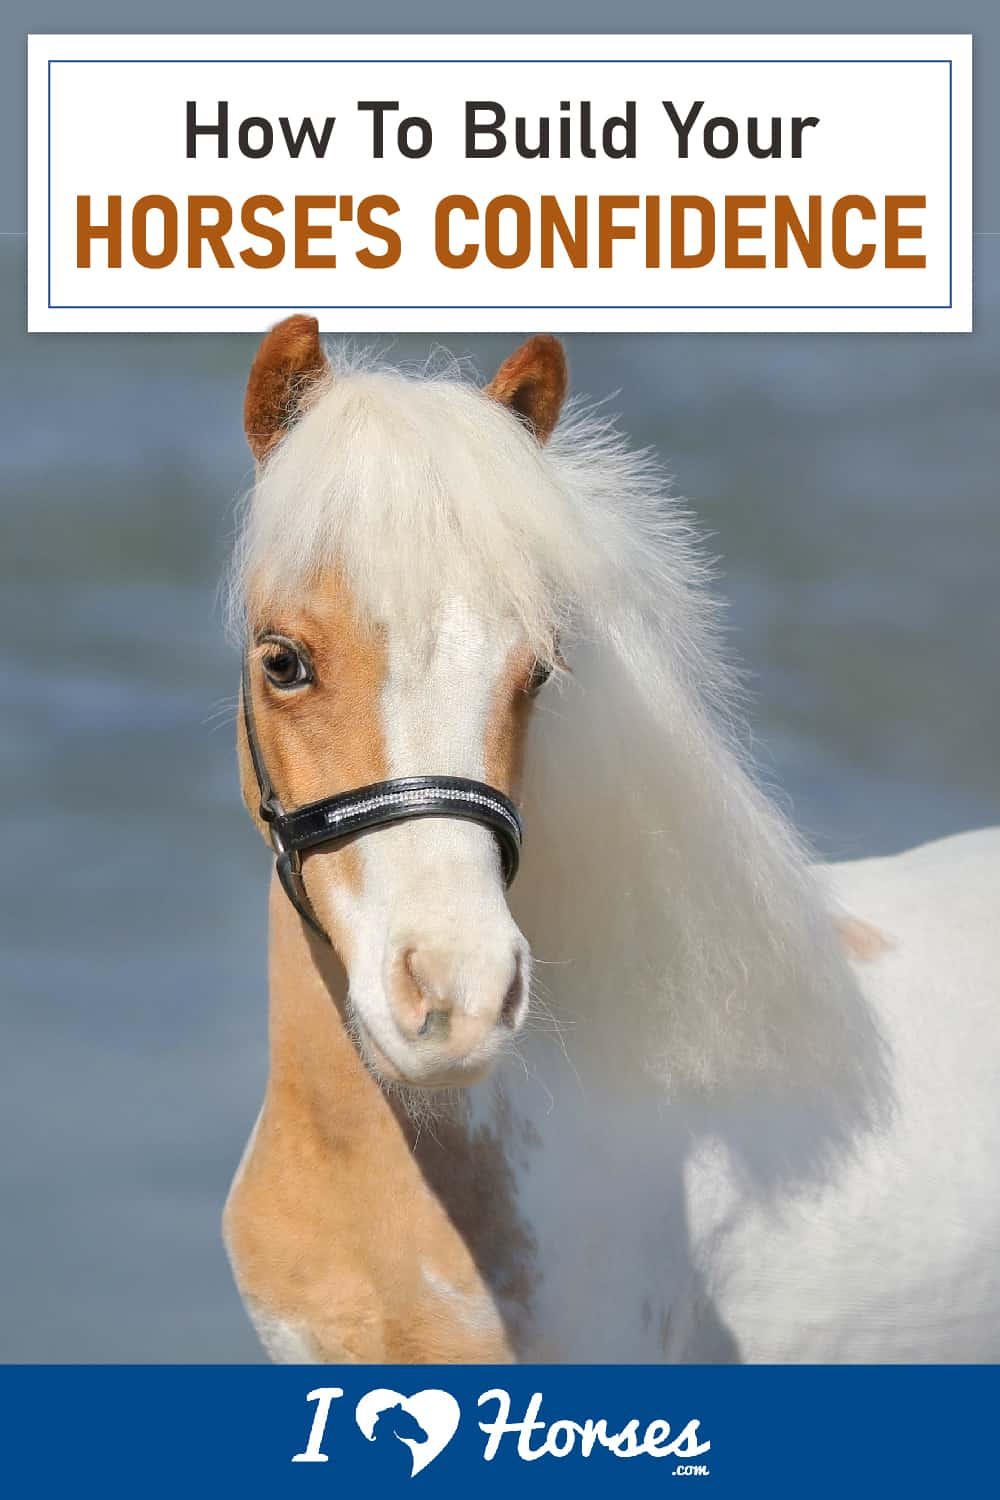 How To Build Your Horse's Confidence